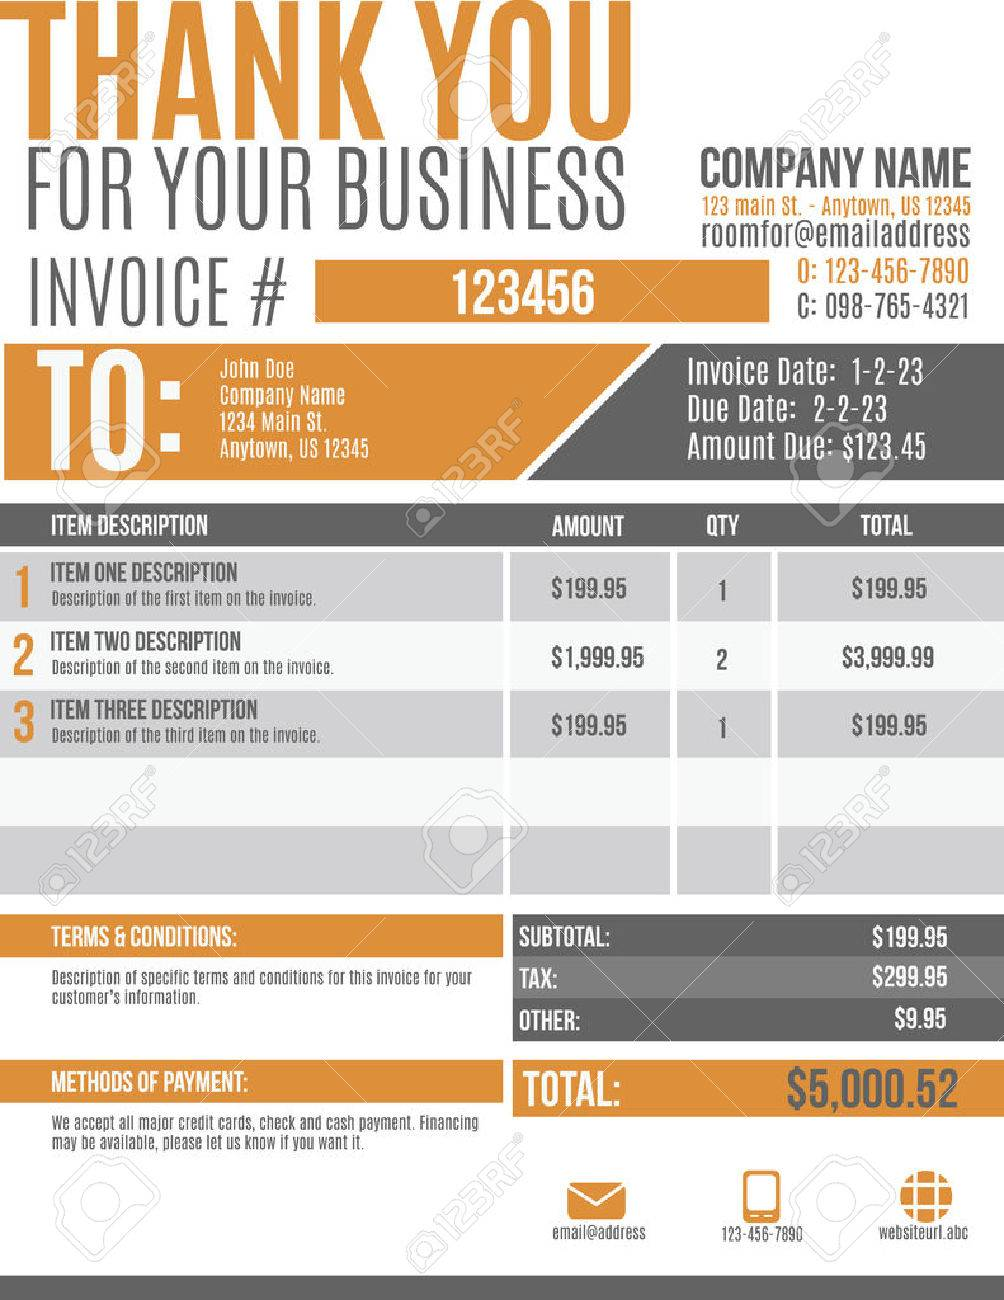 Fun And Modern Customizable Invoice Template Design Royalty Free - Invoice template design